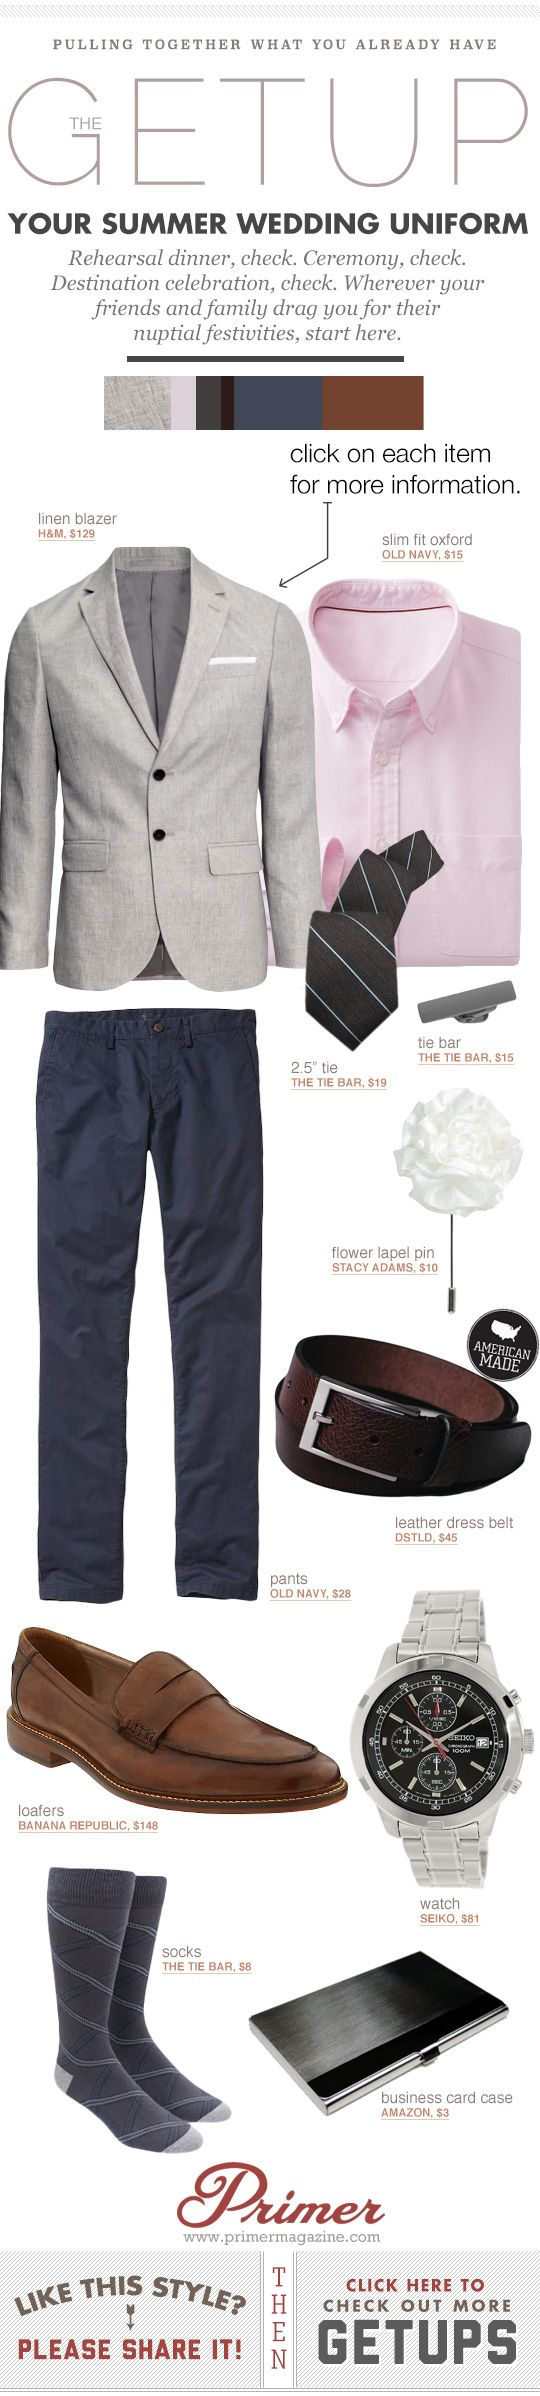 best fashion images on pinterest man style menus clothing and